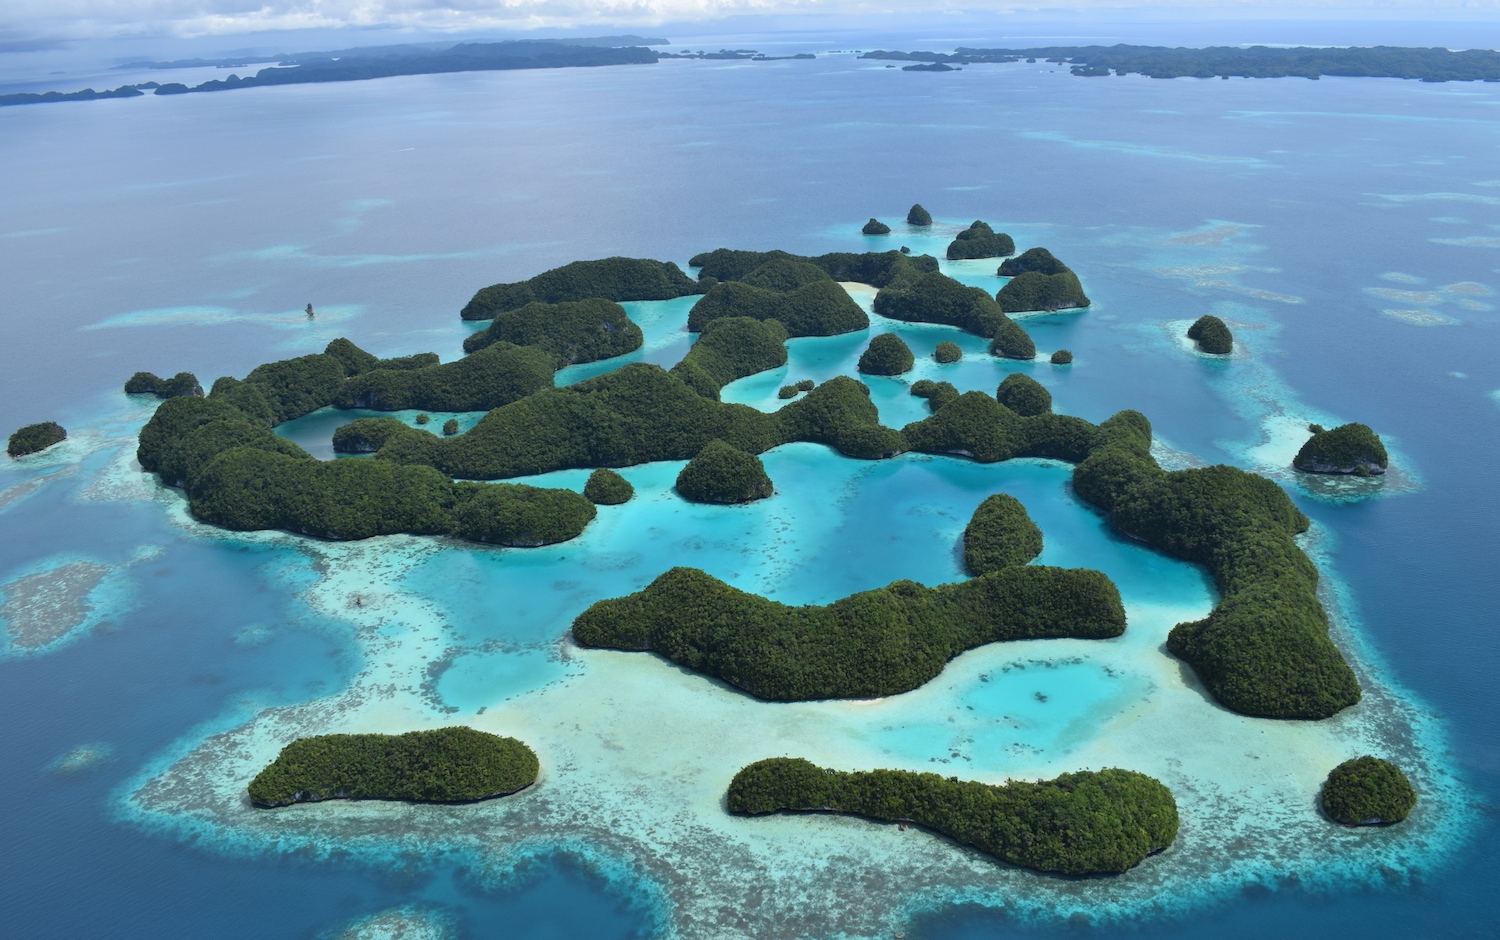 Aerial view of the Rock Islands in Palau